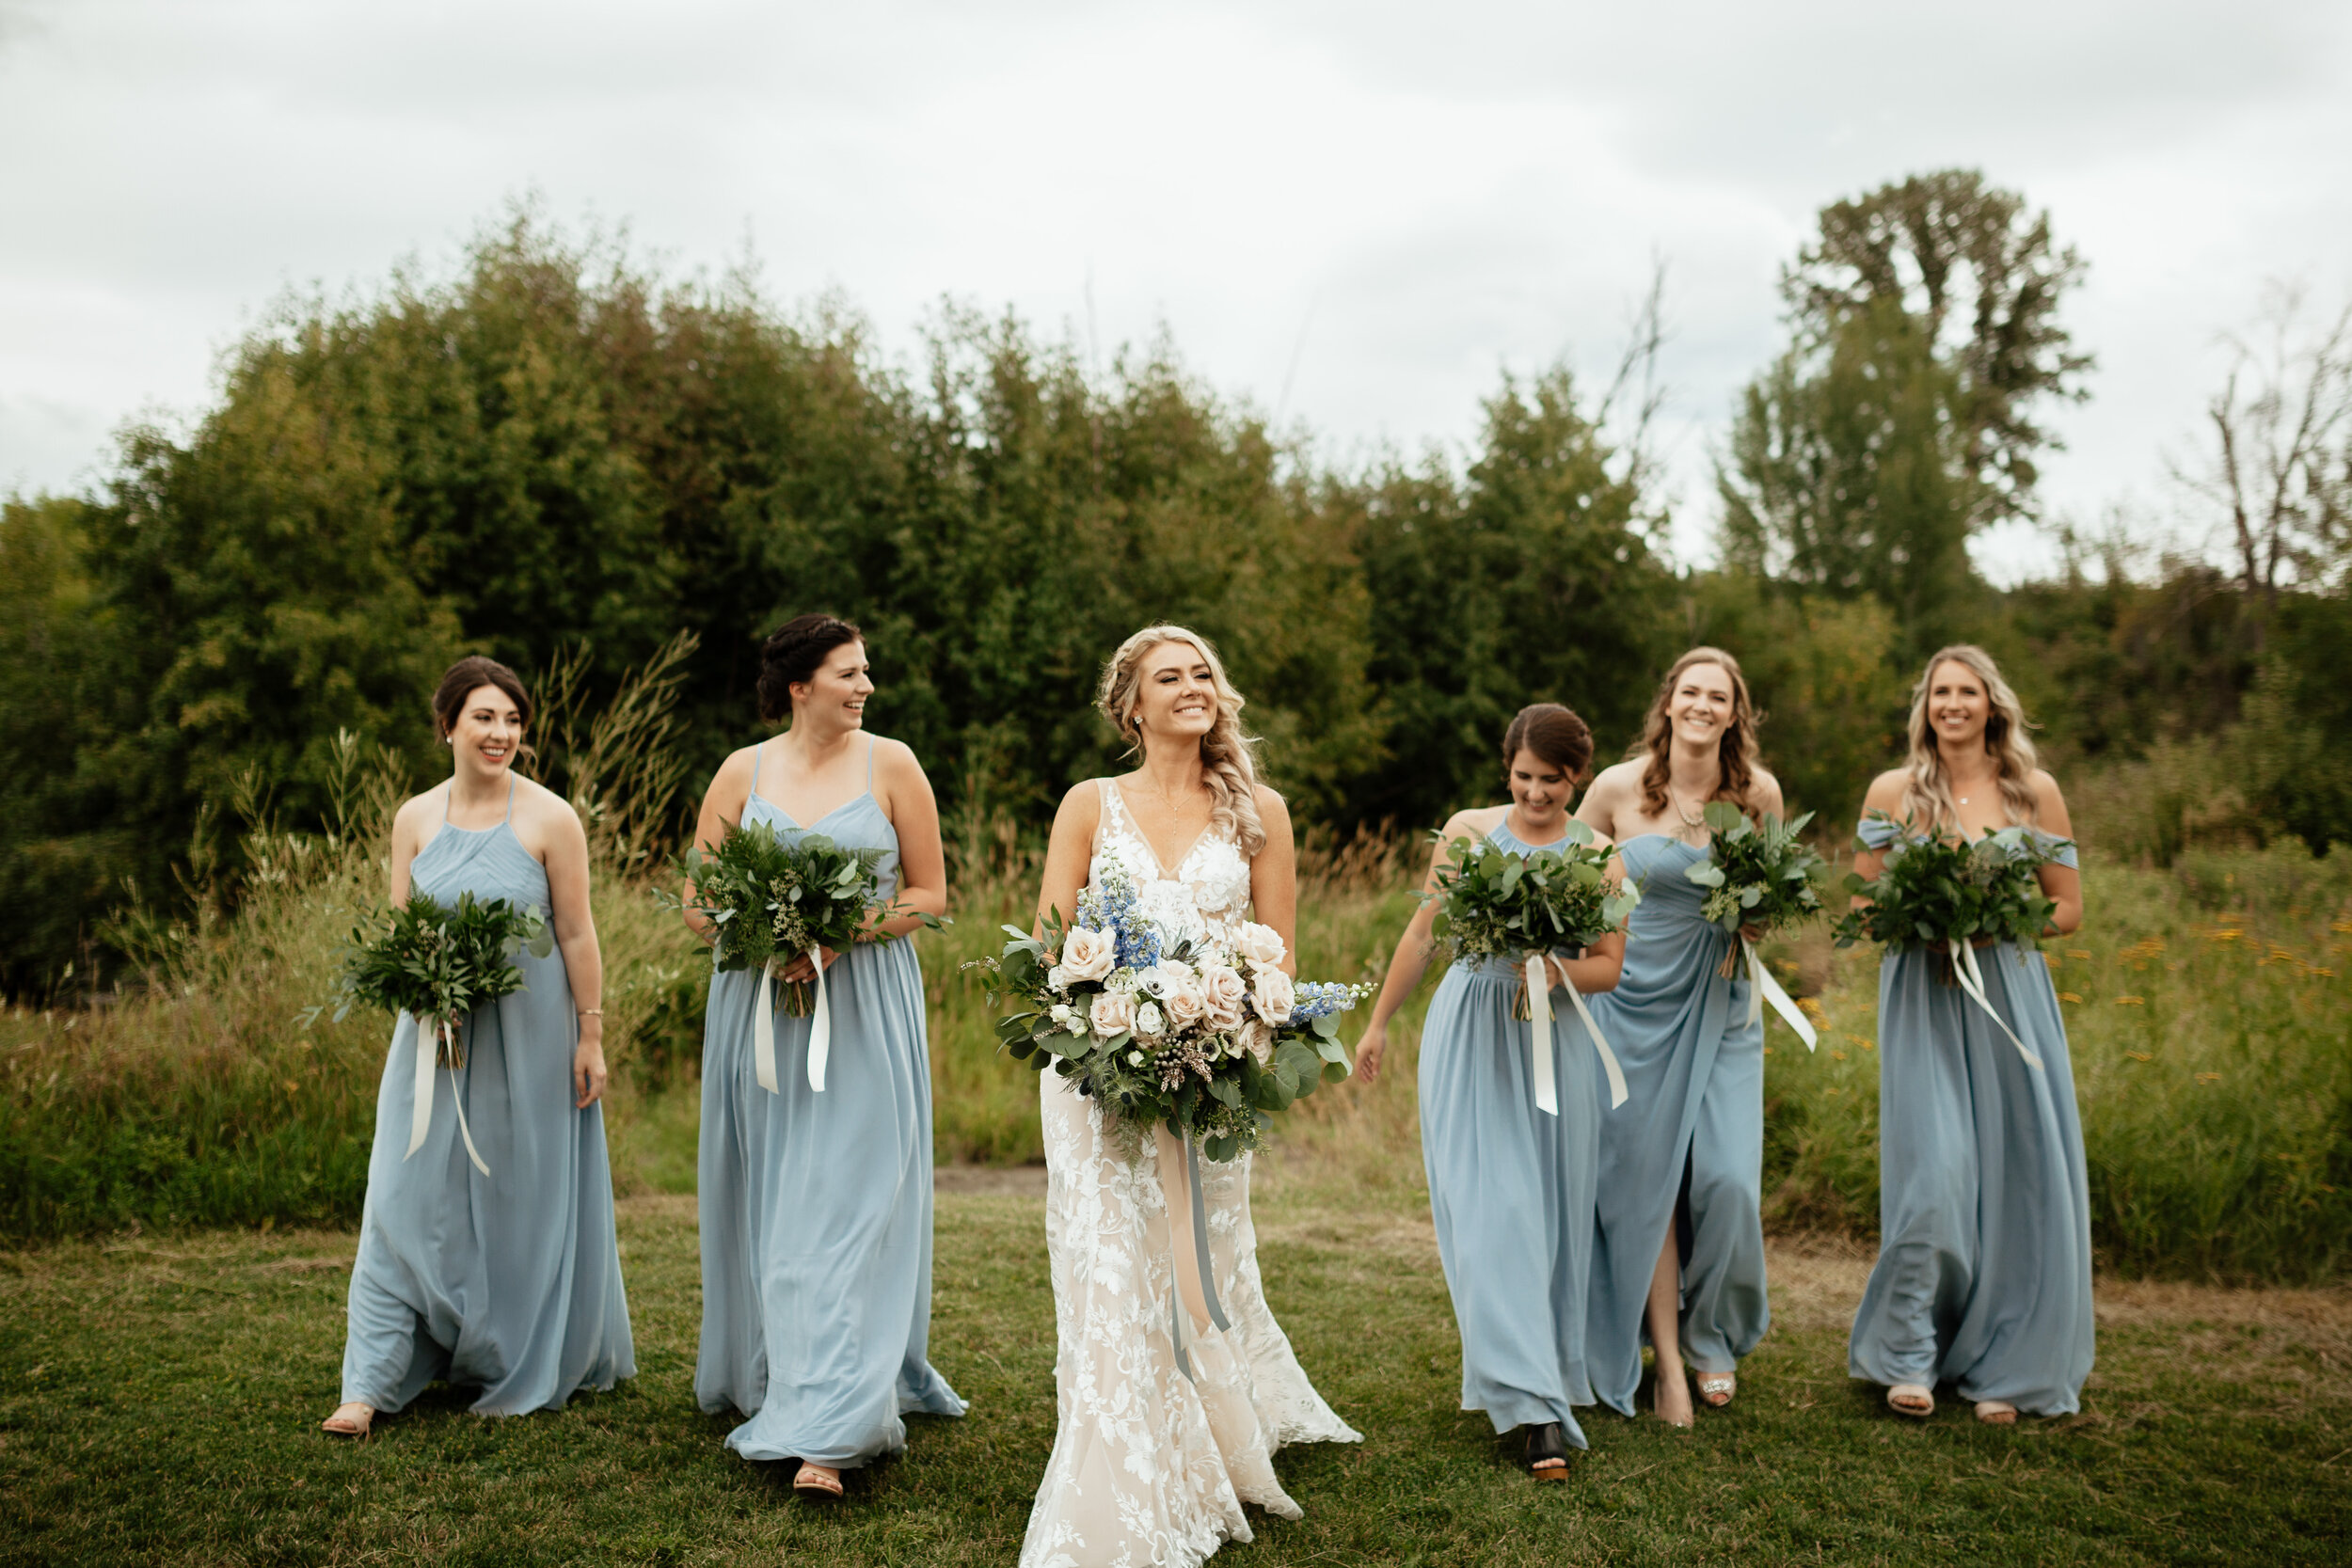 Matt + Jordanne 4 - Bridal Party Portraits-79.jpg